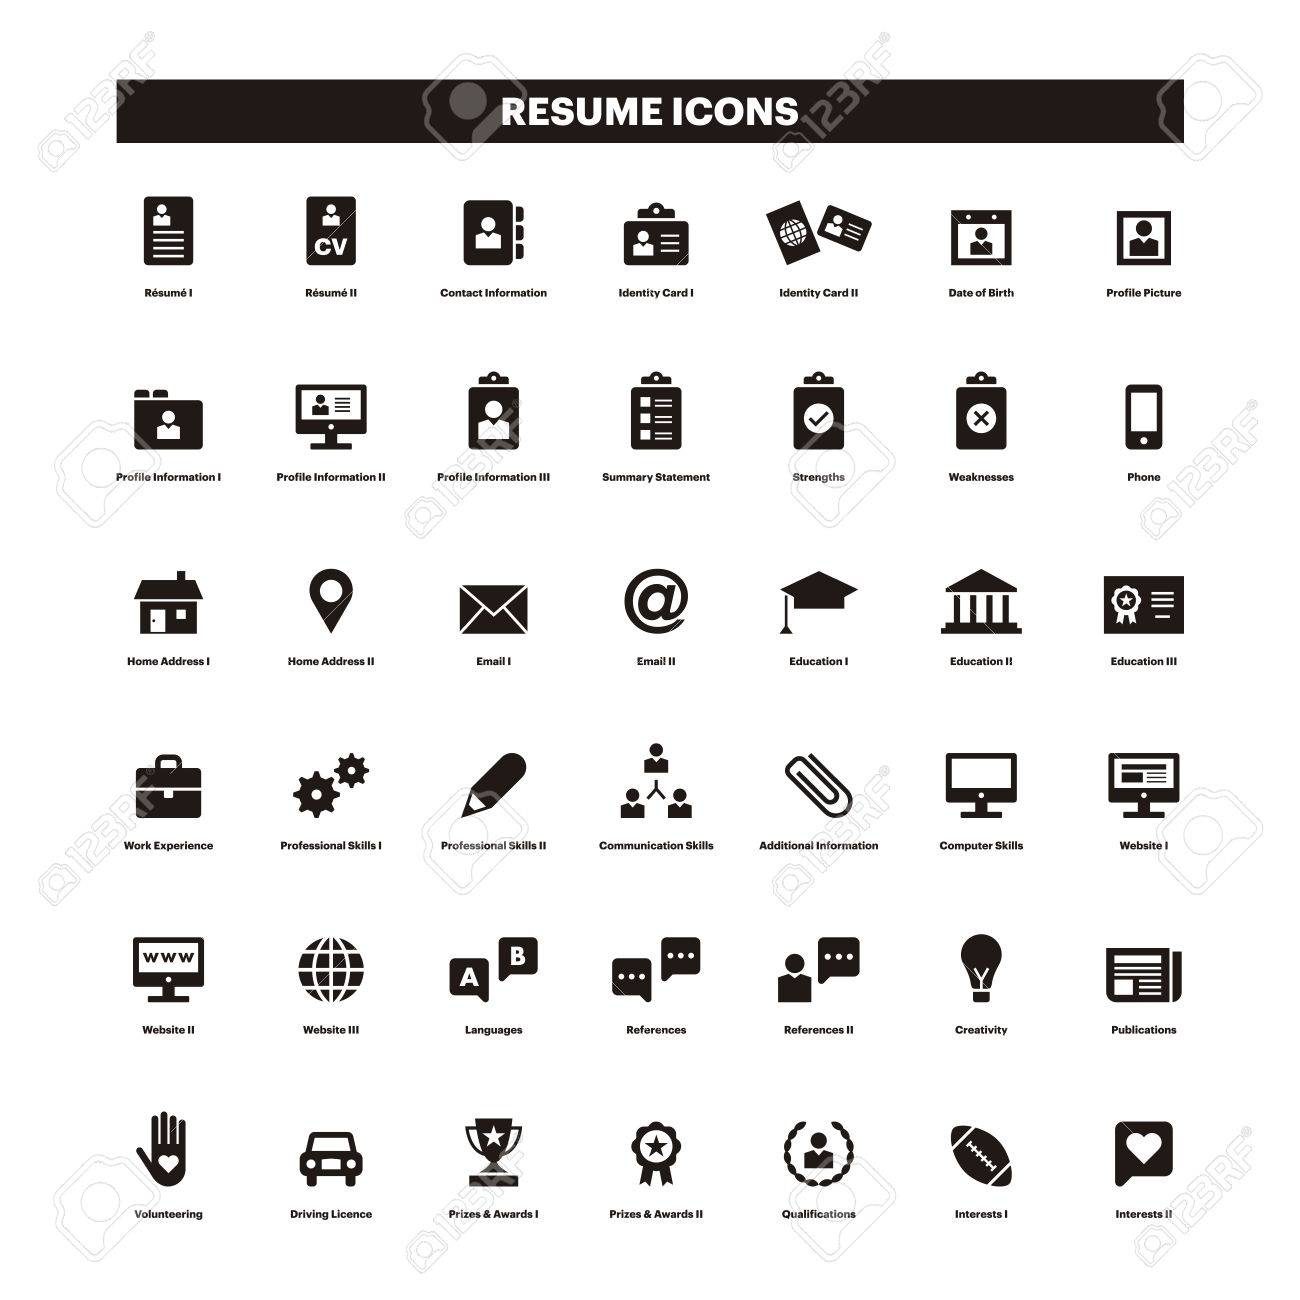 skills icon vector at getdrawings